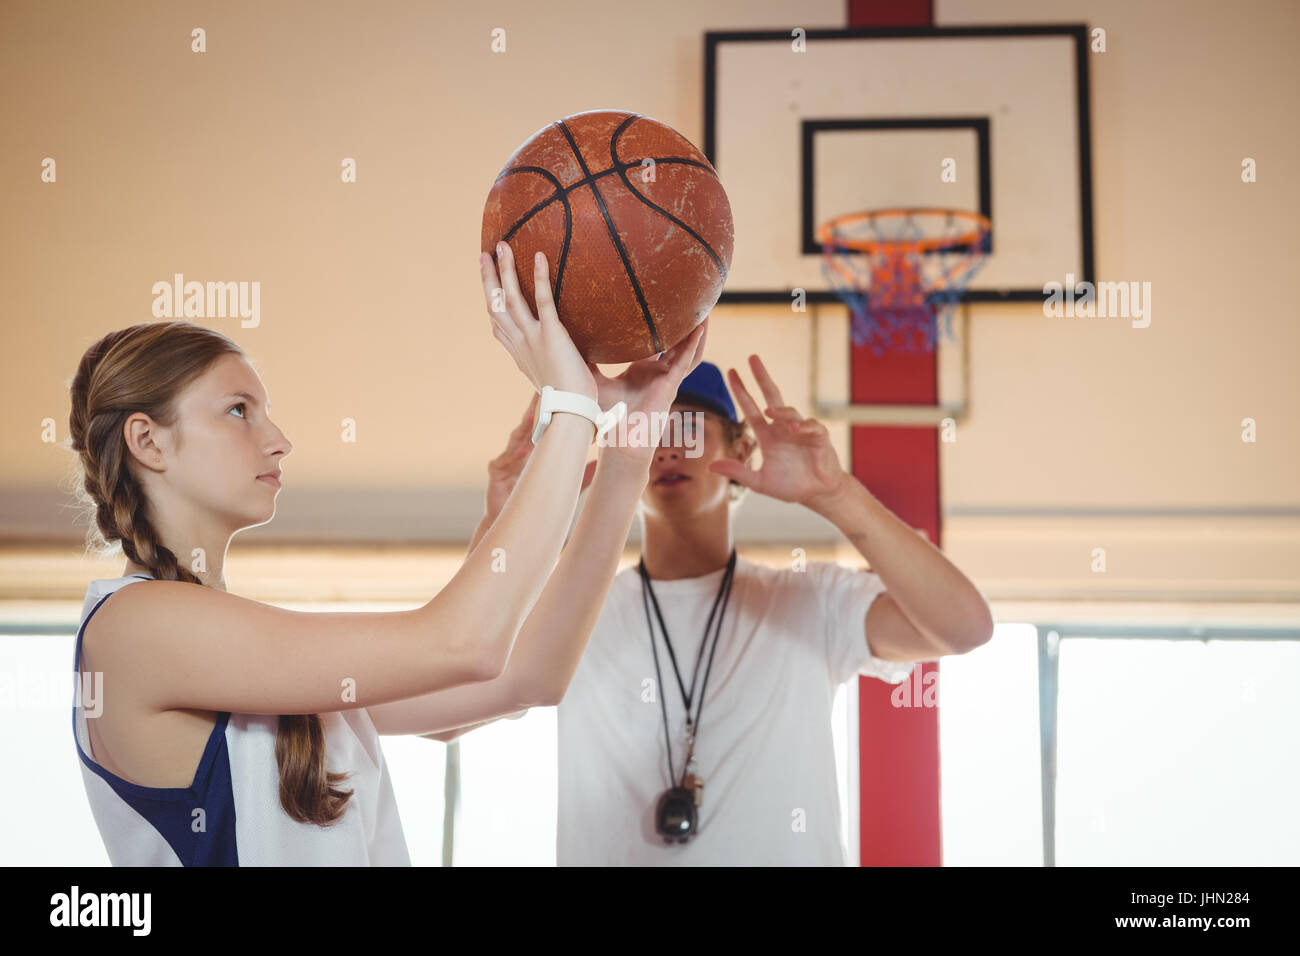 Coach advising female basketball player while practicing in court - Stock Image